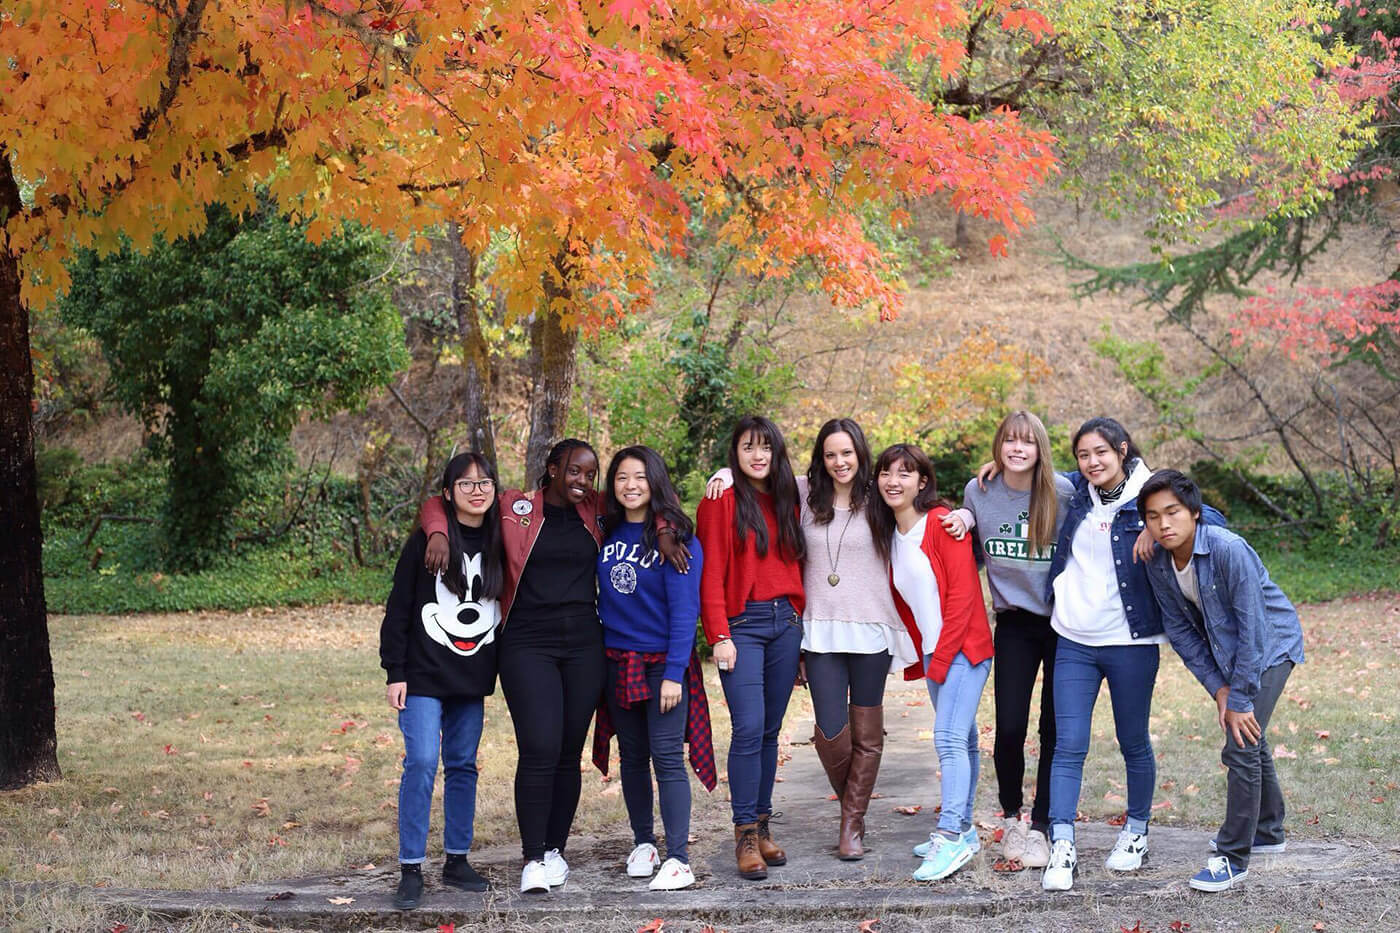 Christian boarding school's, after school club, social media group, stand under, a tree with changing leaves, of orange and red, for the fall season